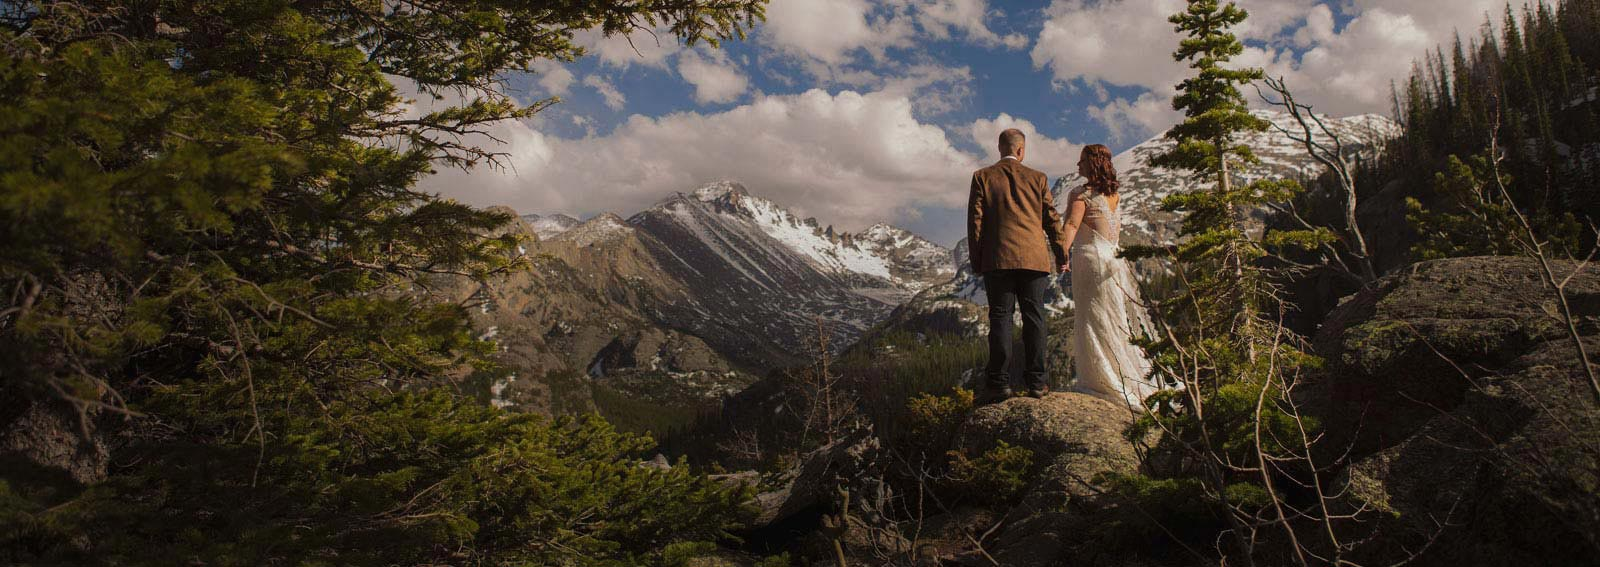 colorado wedding elopement photographer rocky mountain national park estes park rmnp